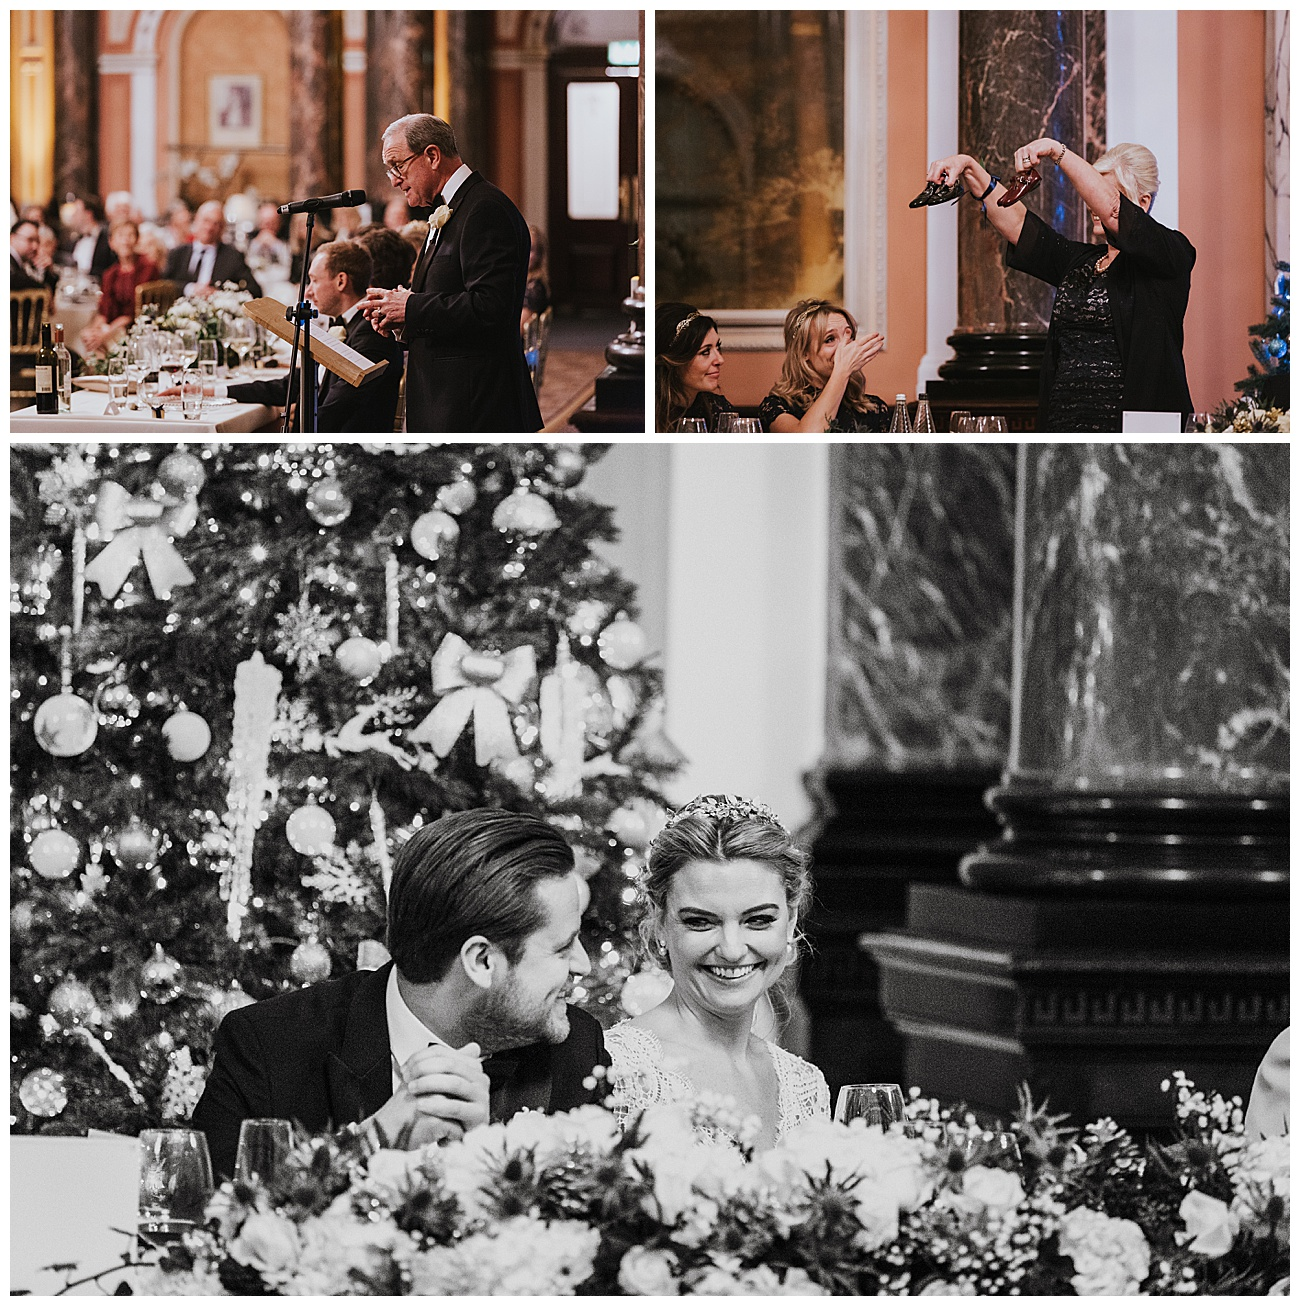 The bride and groom laugh as the brides mother and father do their speeches during the wedding breakfast